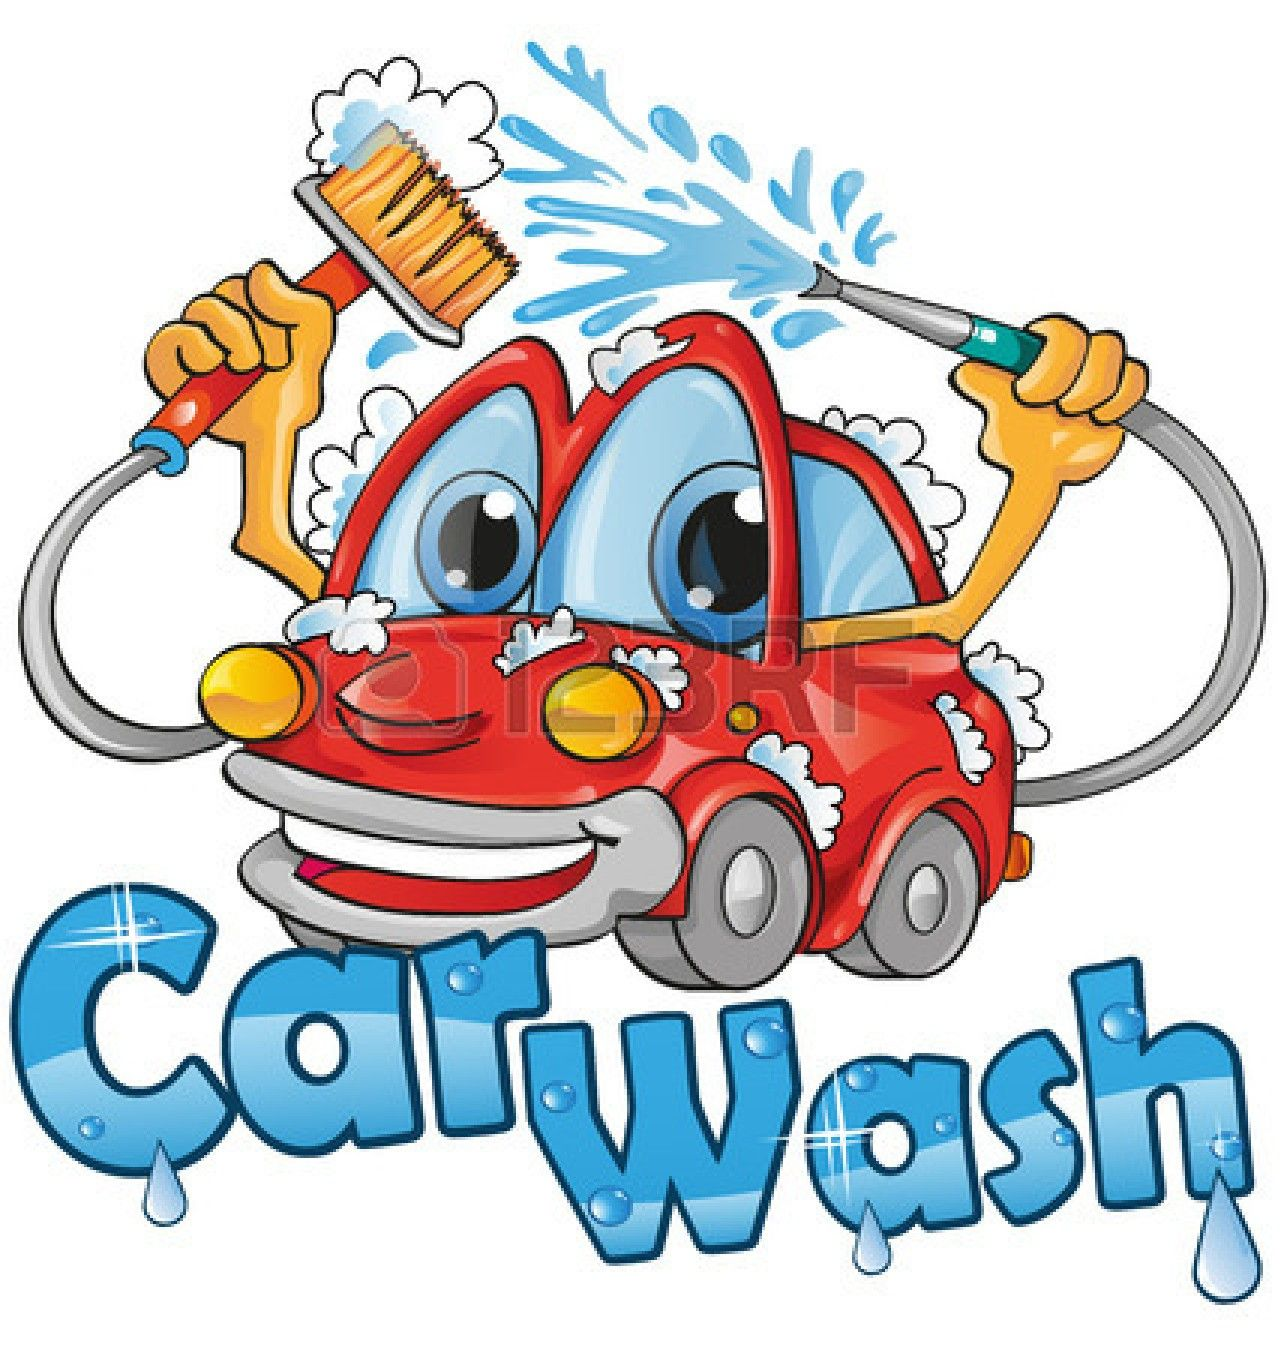 car wash fundraiser car wash fundraiser clipart neon signs all rh pinterest com fundraising clipart free fundraising clip art free